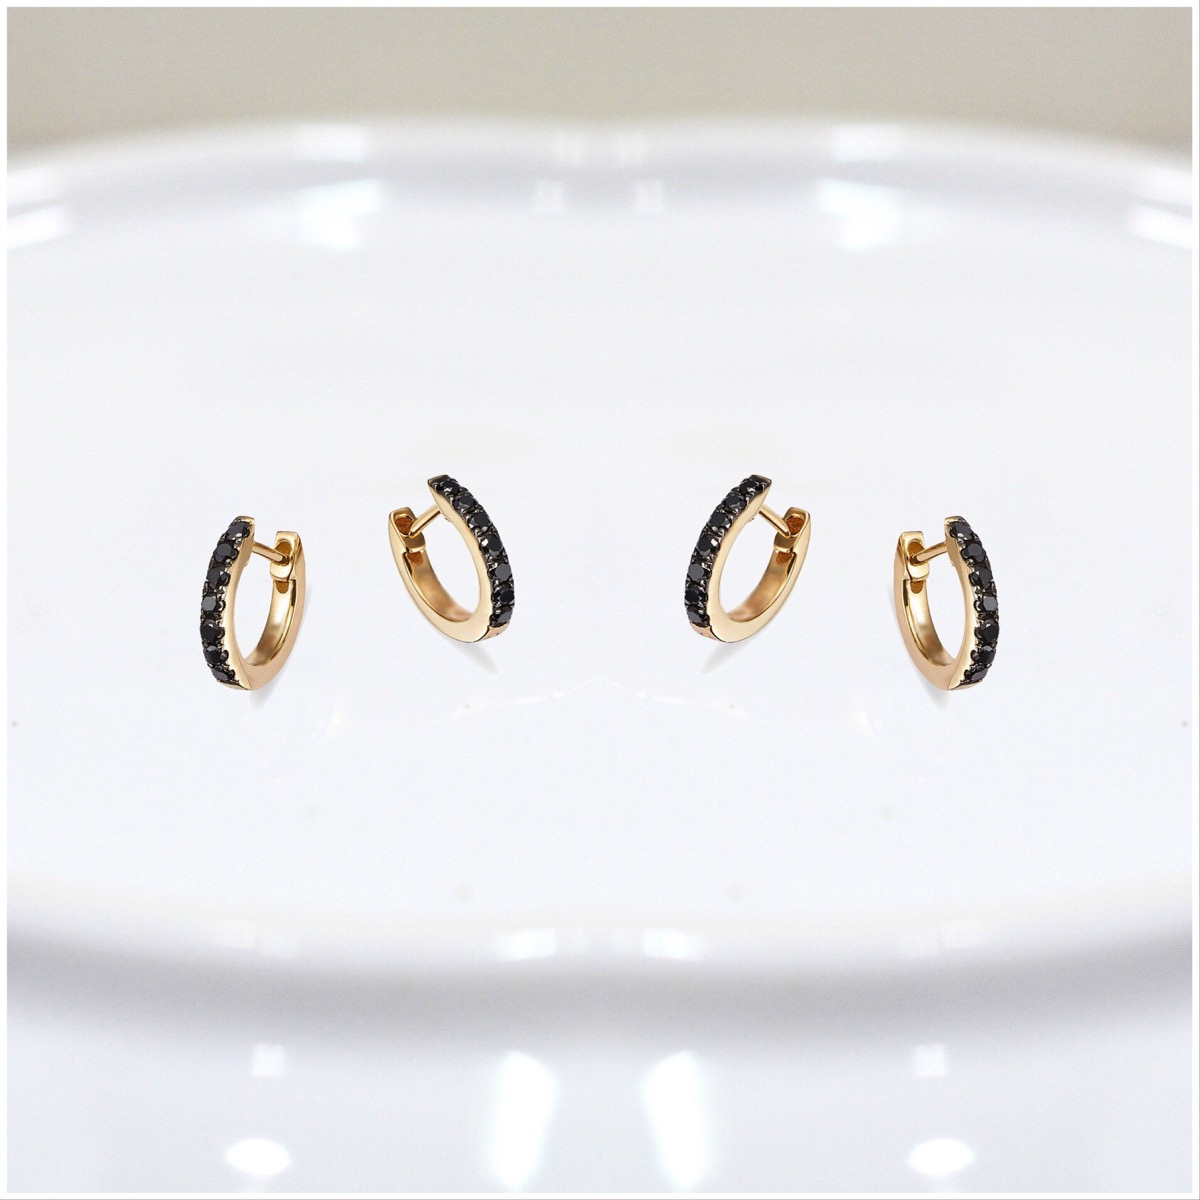 two pairs of gold hoops with black diamonds, Etsy jewelry